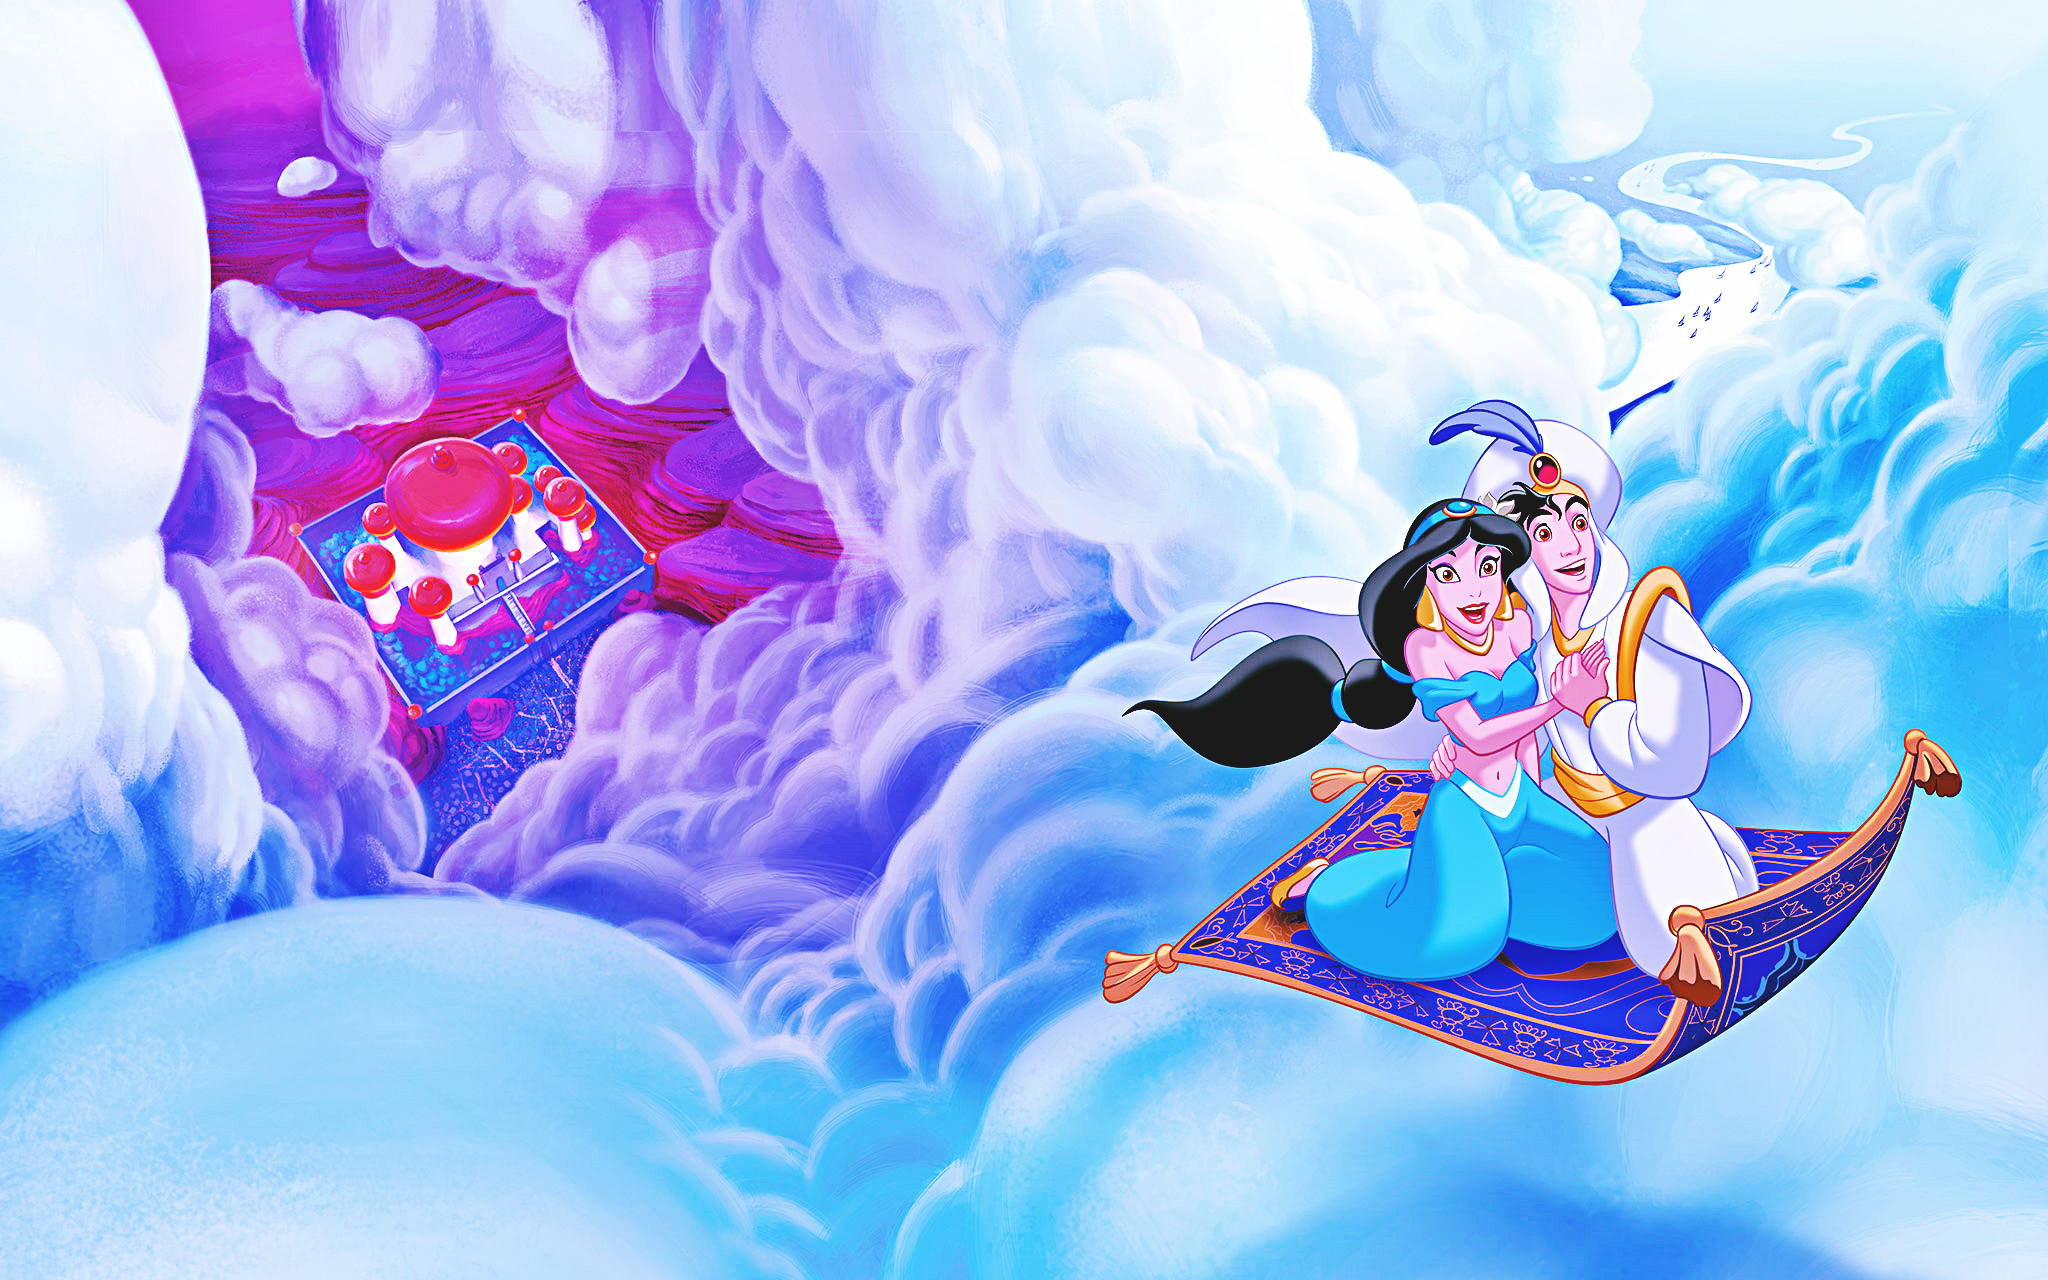 Walt disney characters images walt disney book images for Aladdin and jasmine on carpet wallpaper